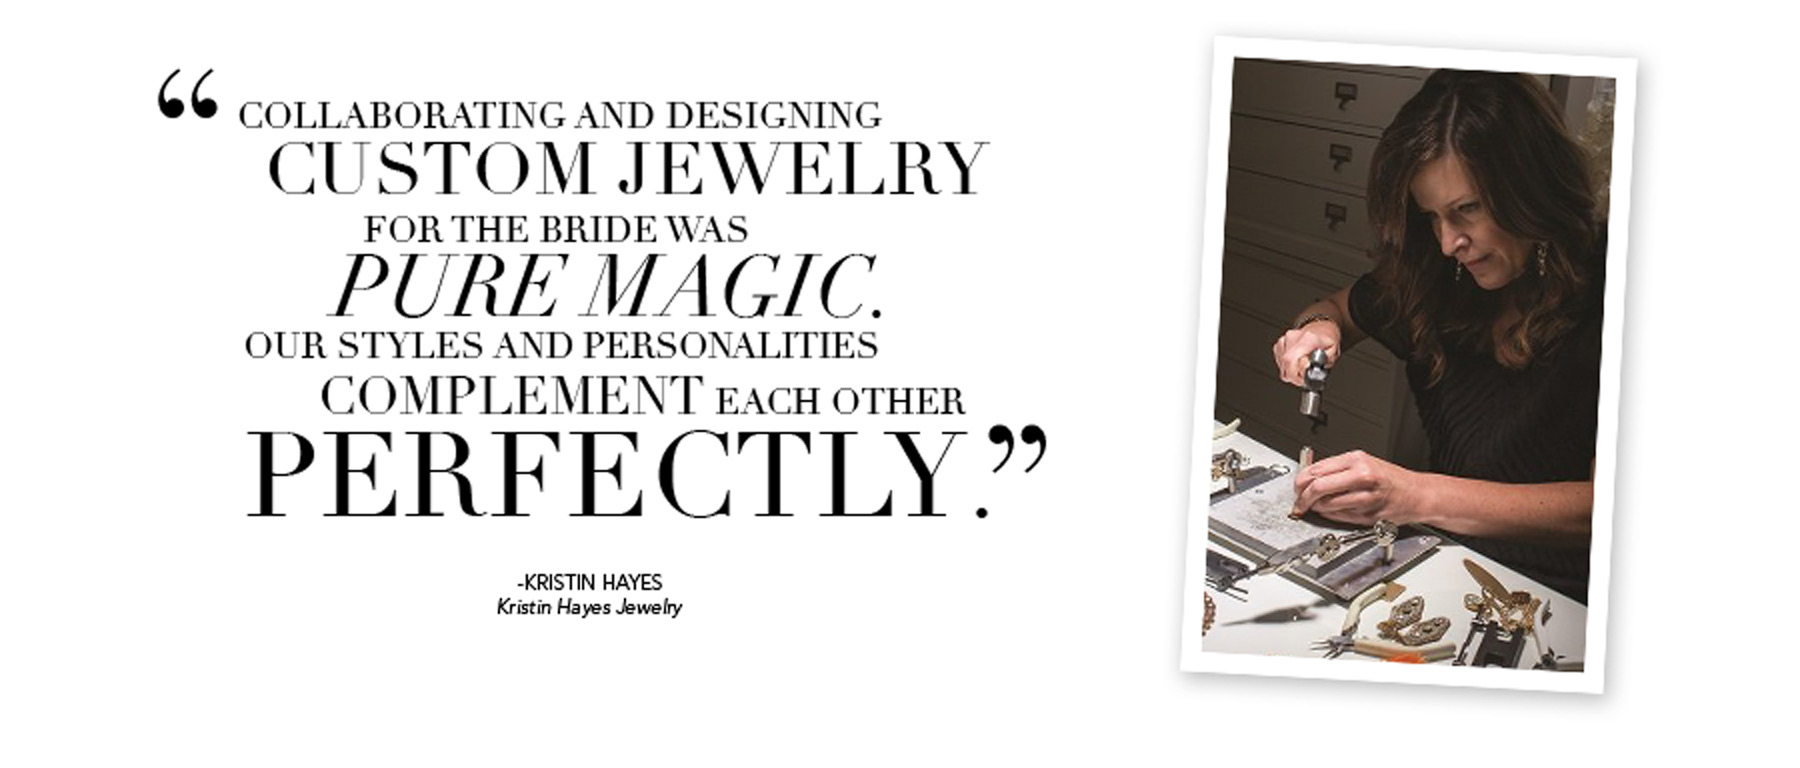 Collaborating and designing custom jewelry for the bride was pure magic. Our styles and personalities complement each other perfectly. - Kristin Hayes, Kristin Hayes Jewelry